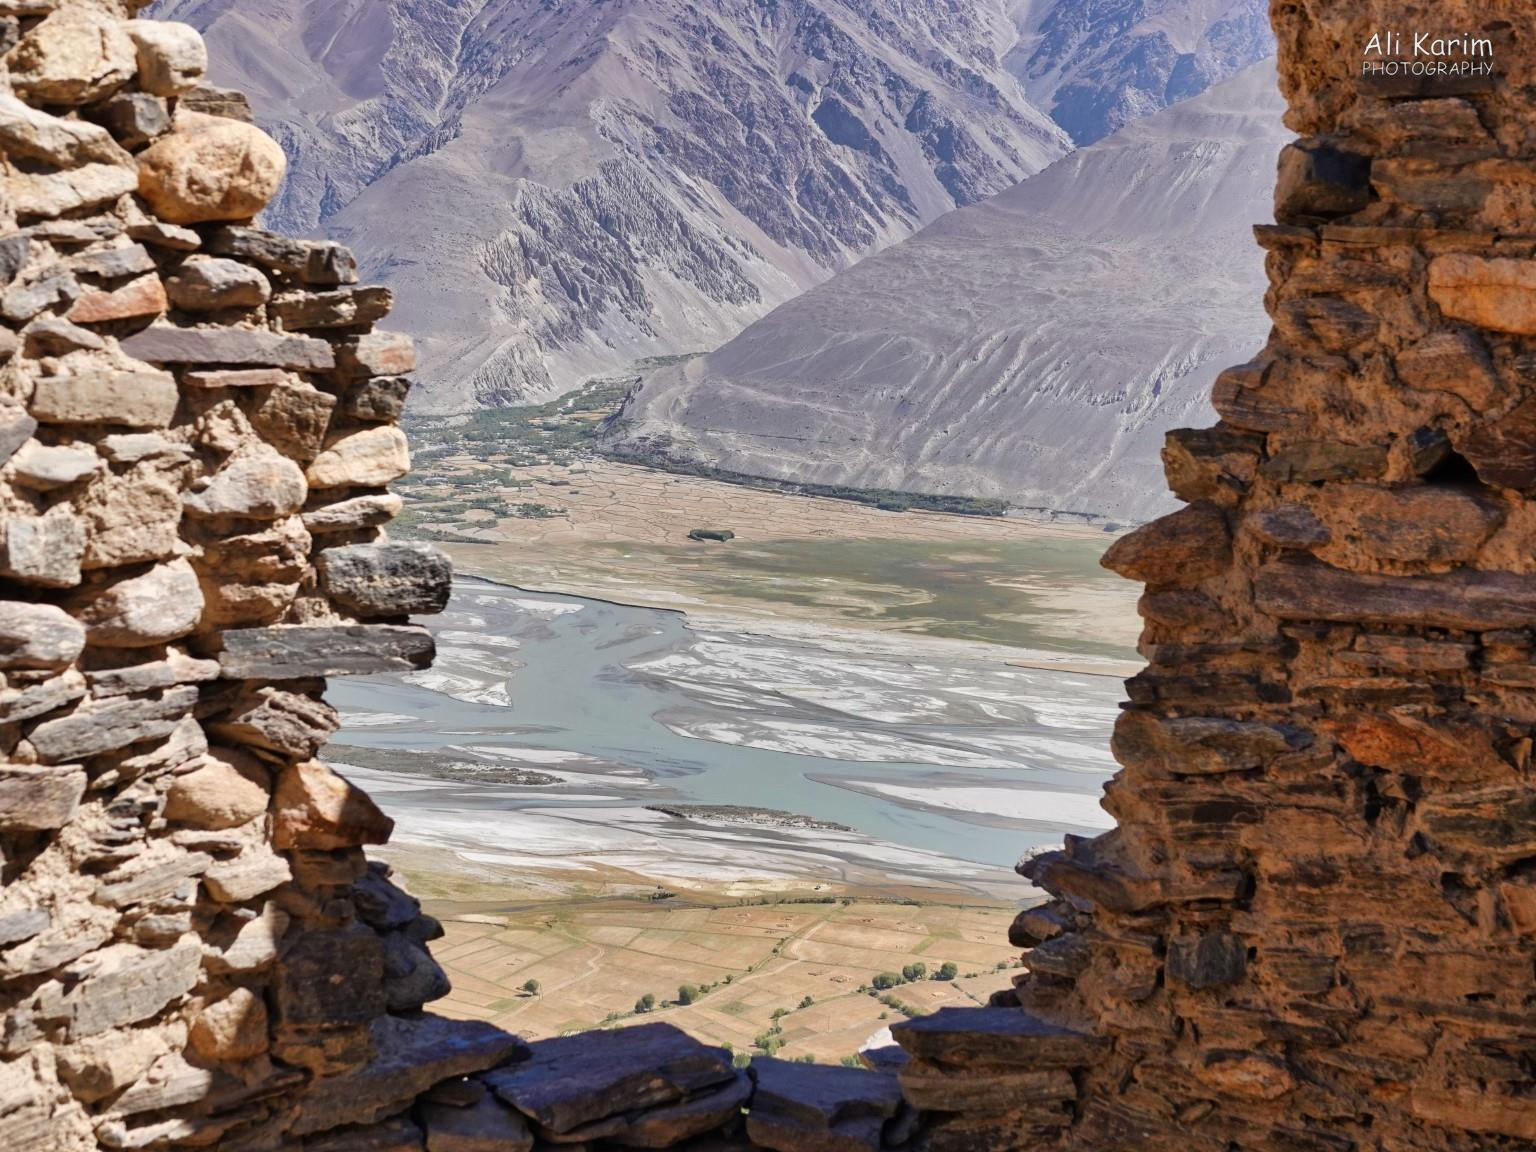 Langar, Bulunkul Tajikistan, Commanding views of the Panj, Wakhan valley and Afghanistan, from Yamchun Fortress